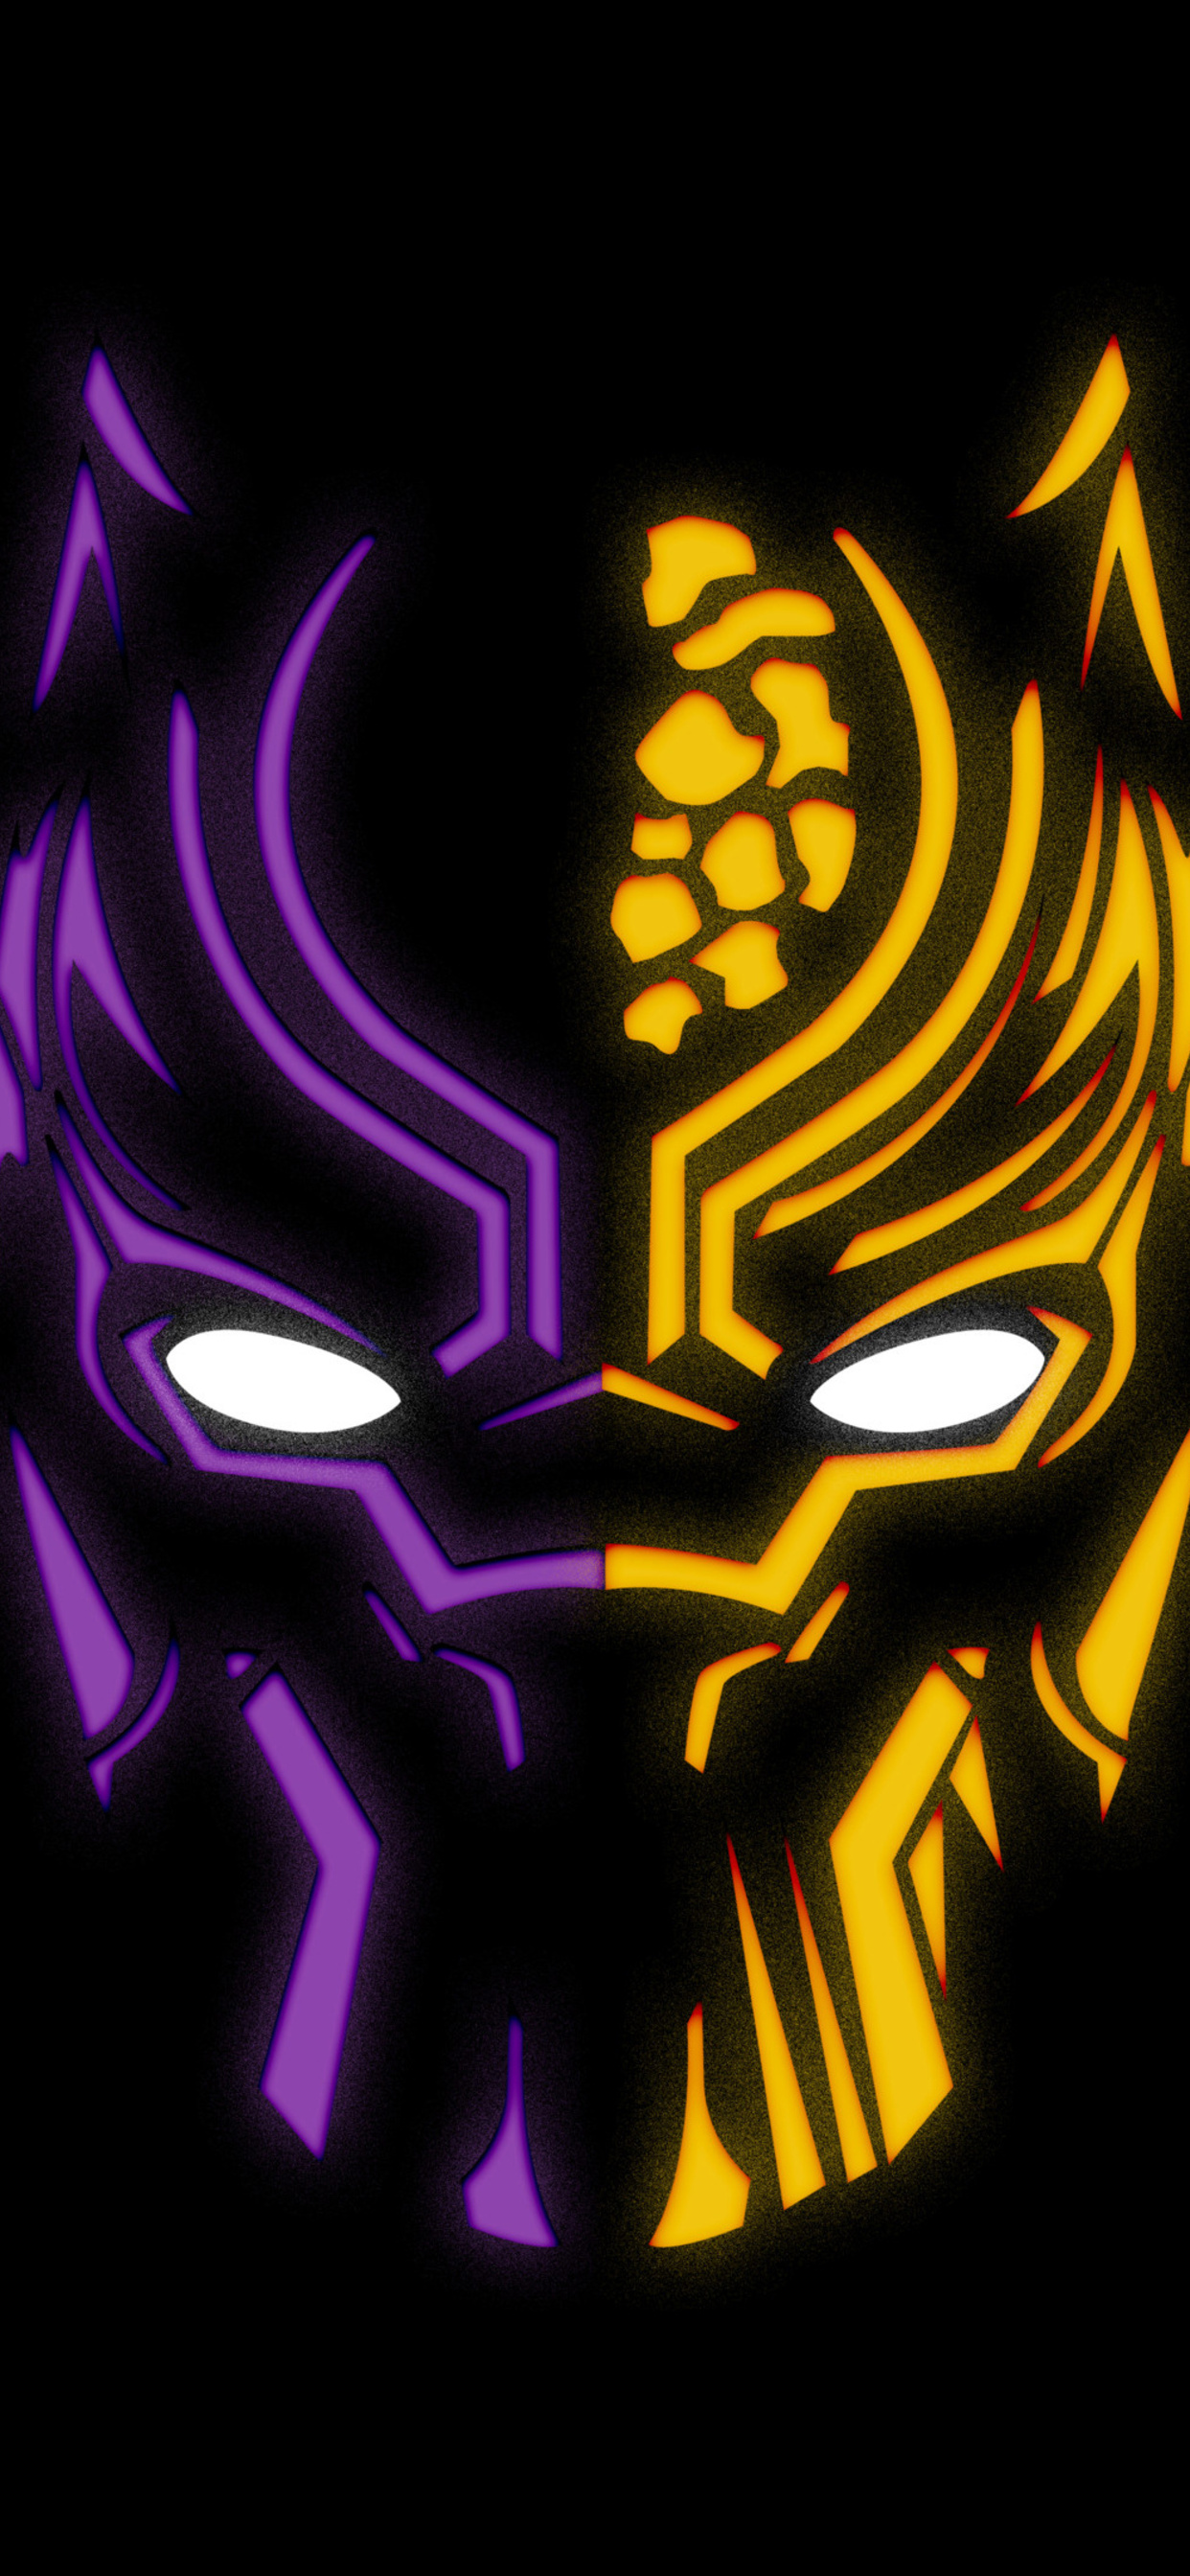 1242x2688 Black Panther Illustration 4k Iphone Xs Max Hd 4k